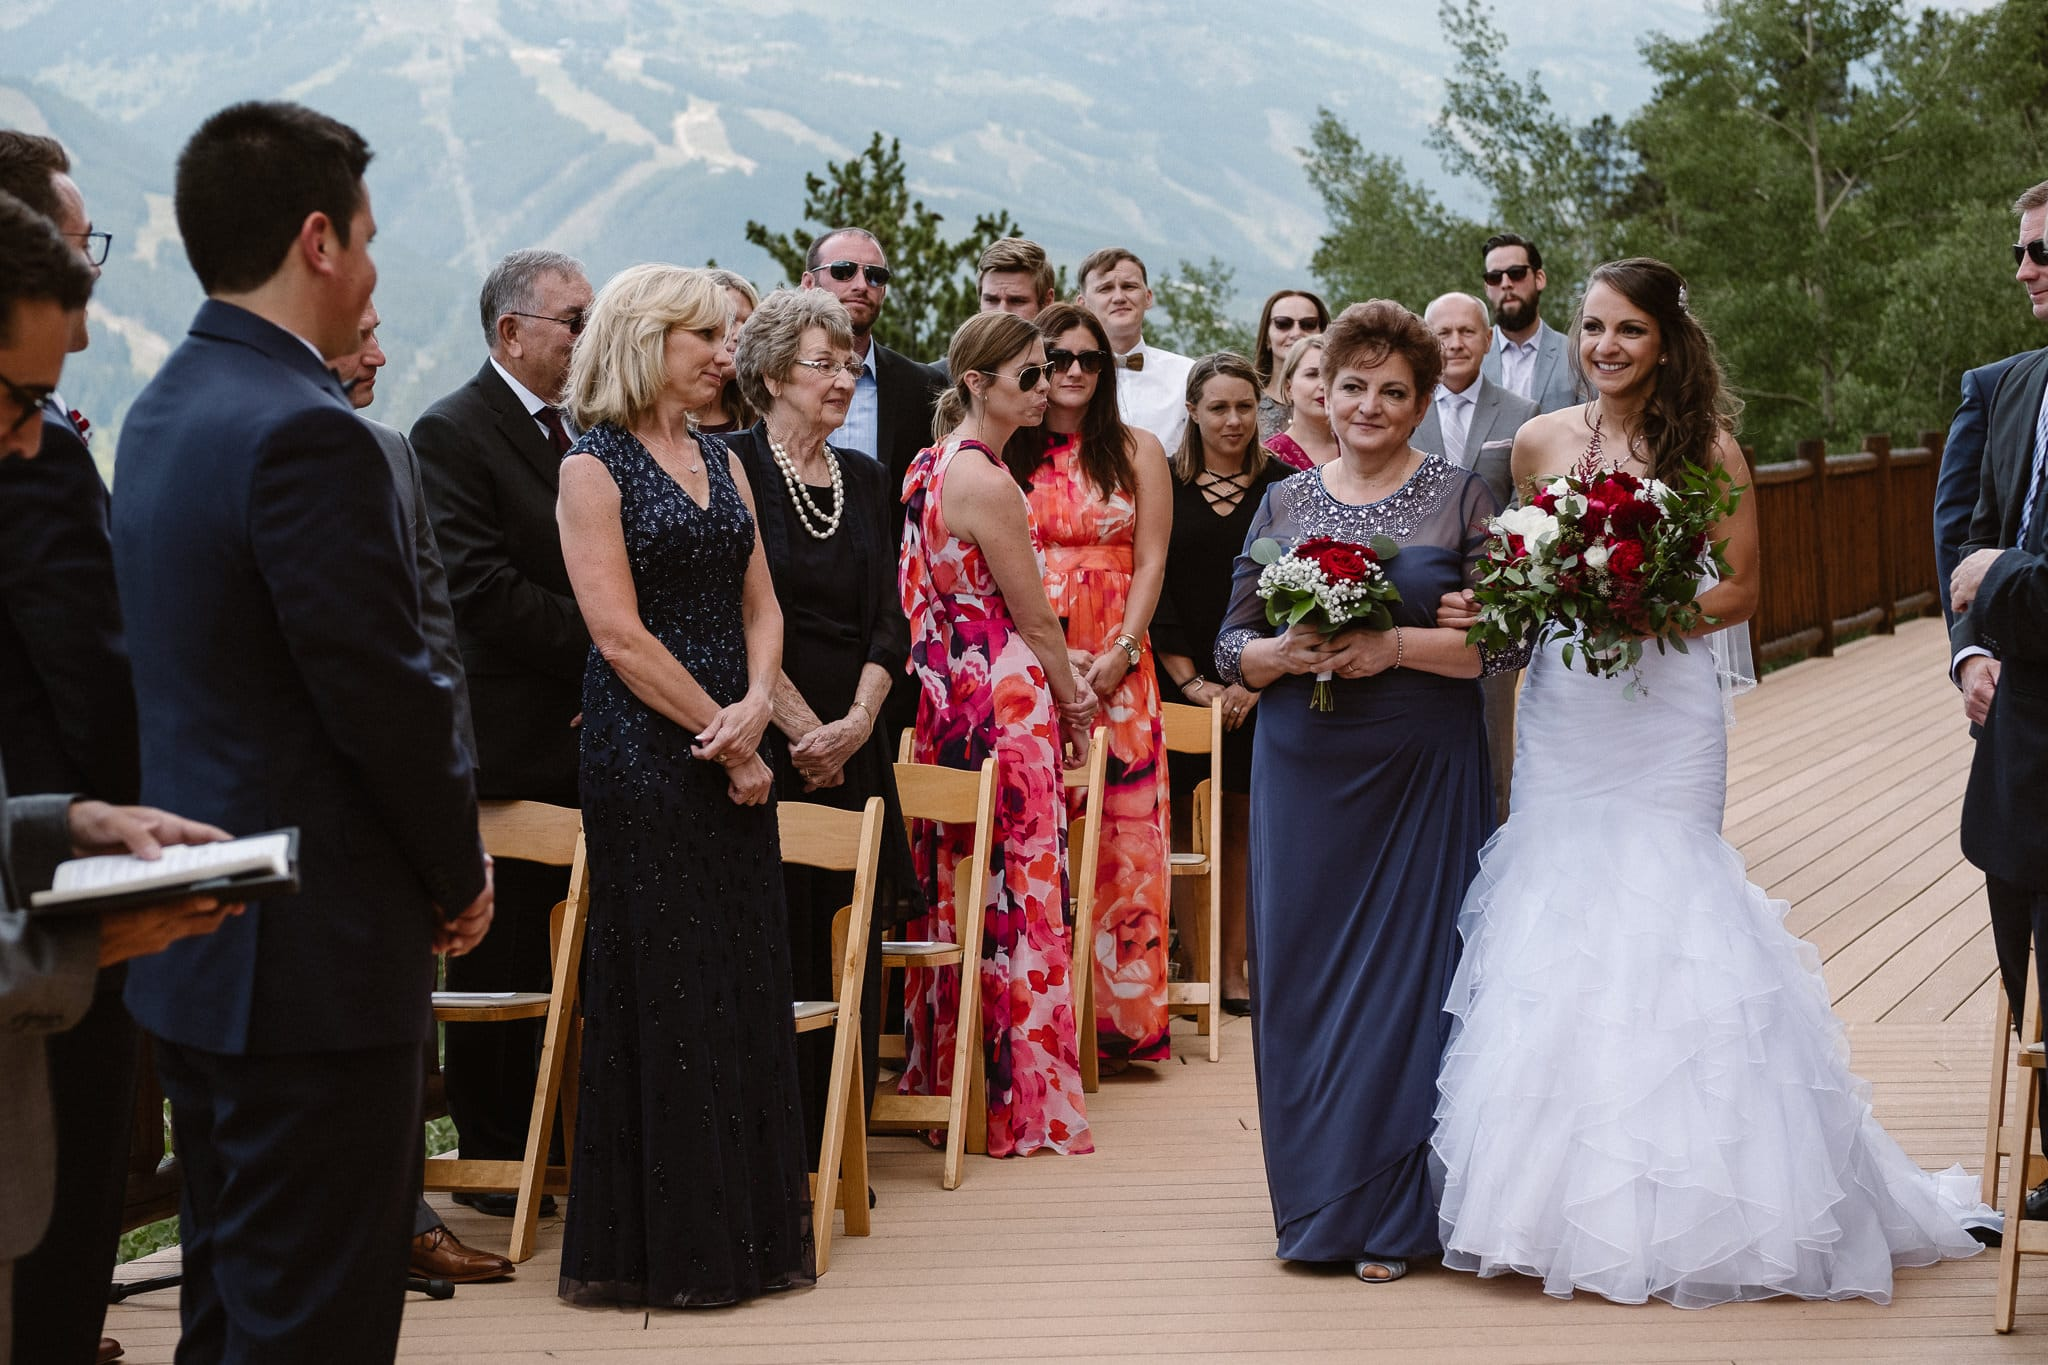 Wedding ceremony with mountain views in Breckenridge.